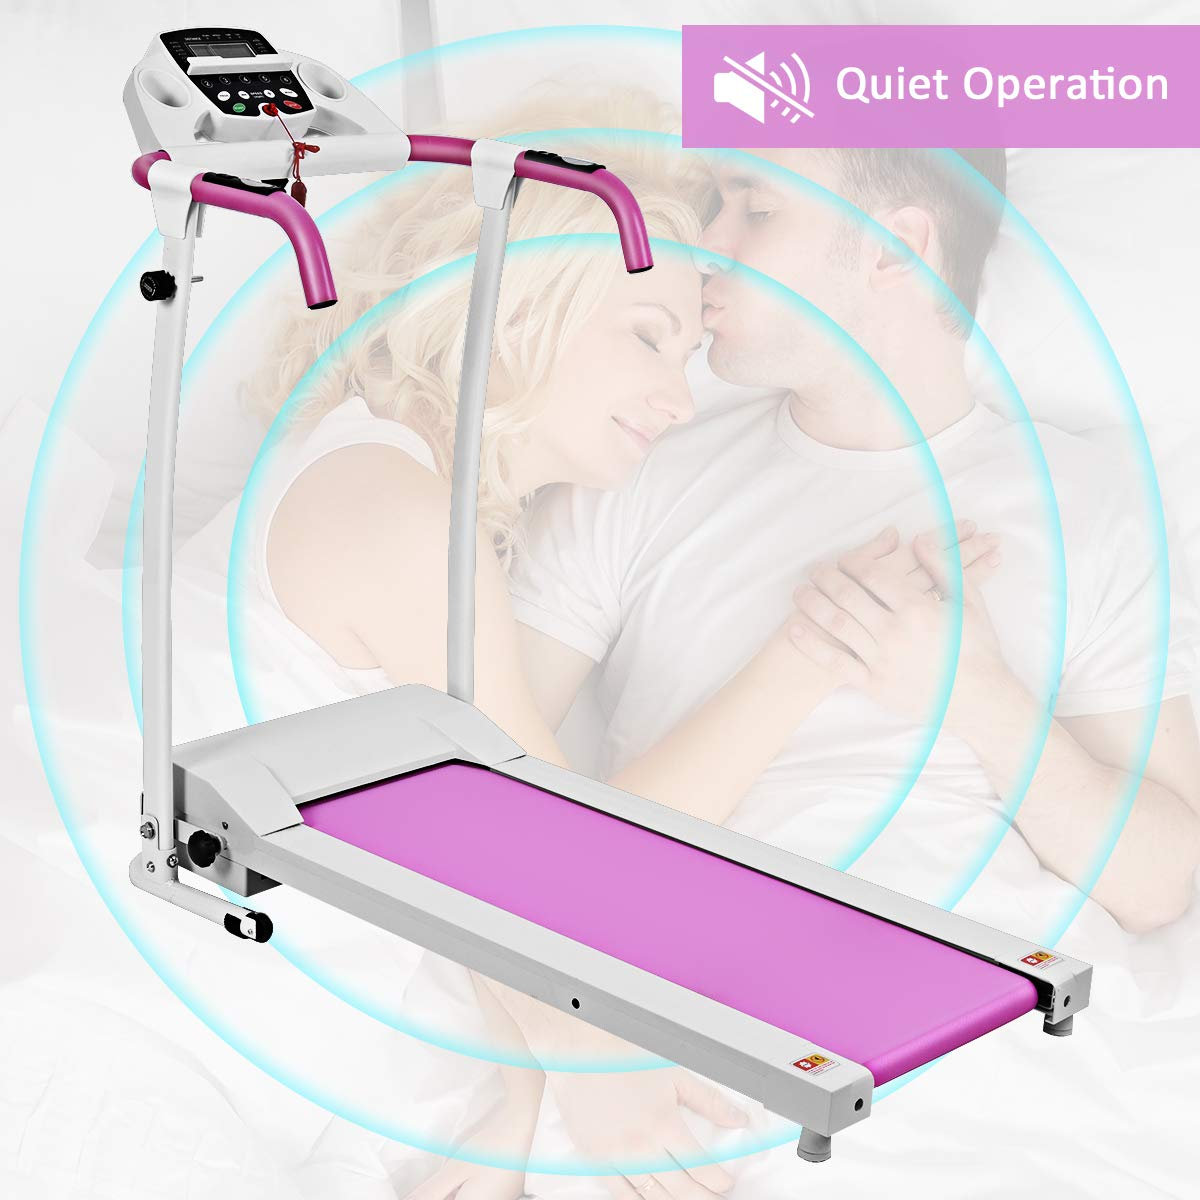 Goplus 800W Folding Treadmill Electric Motorized Power Fitness Running Machine with LED Display and Mobile Phone Holder Perfect for Home Use (Pink) by Goplus (Image #6)